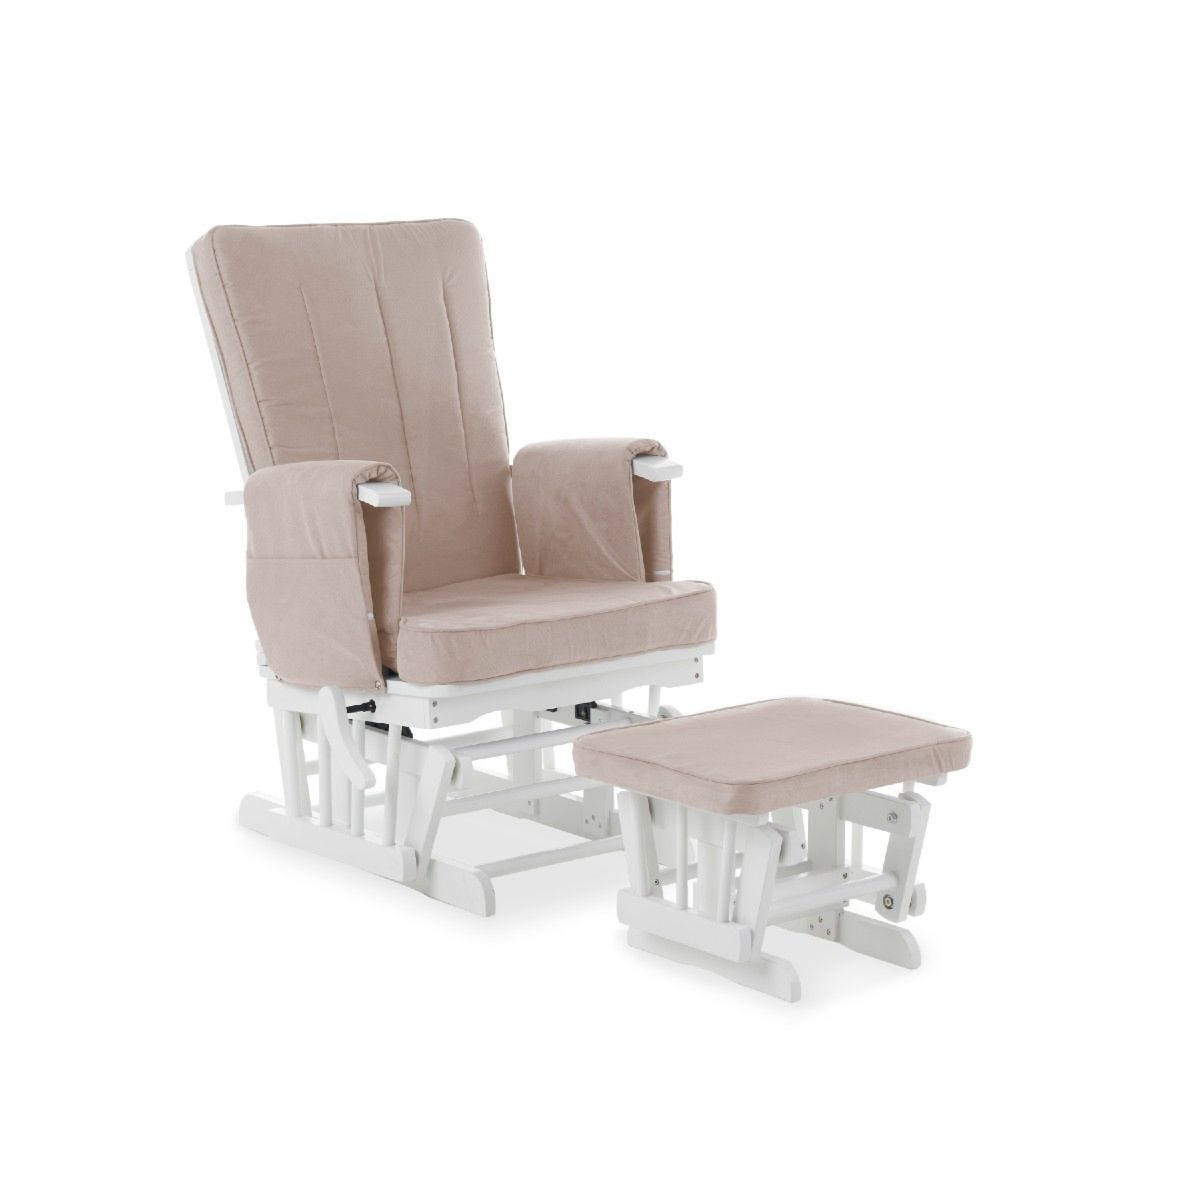 Obaby Deluxe Reclining Glider Chair and Stool Sand